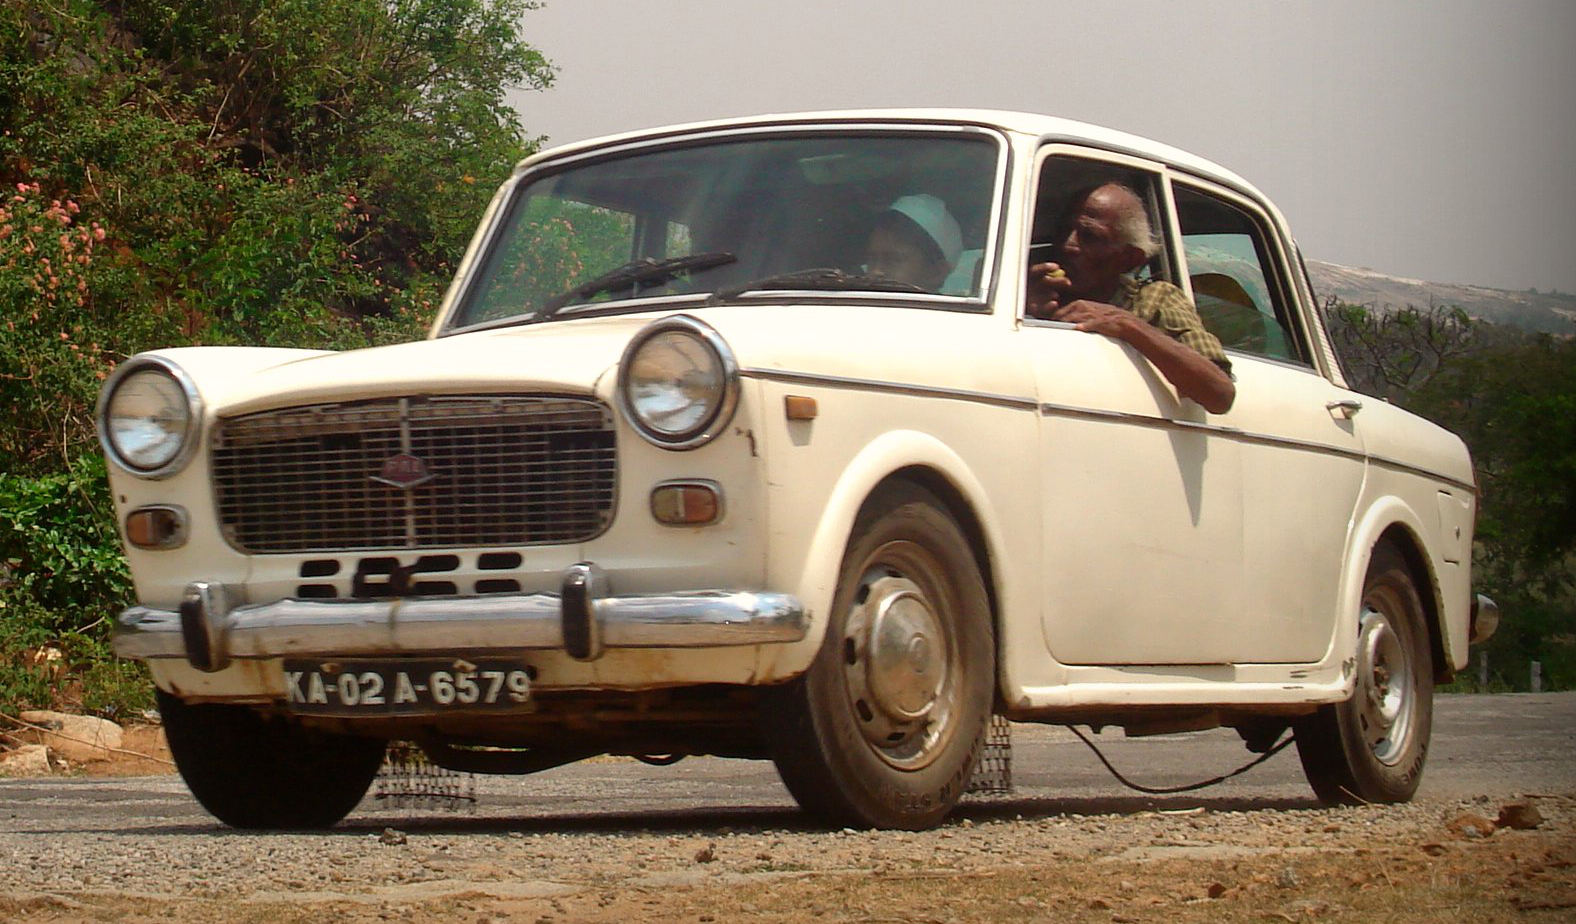 Premier padmini photo - 4